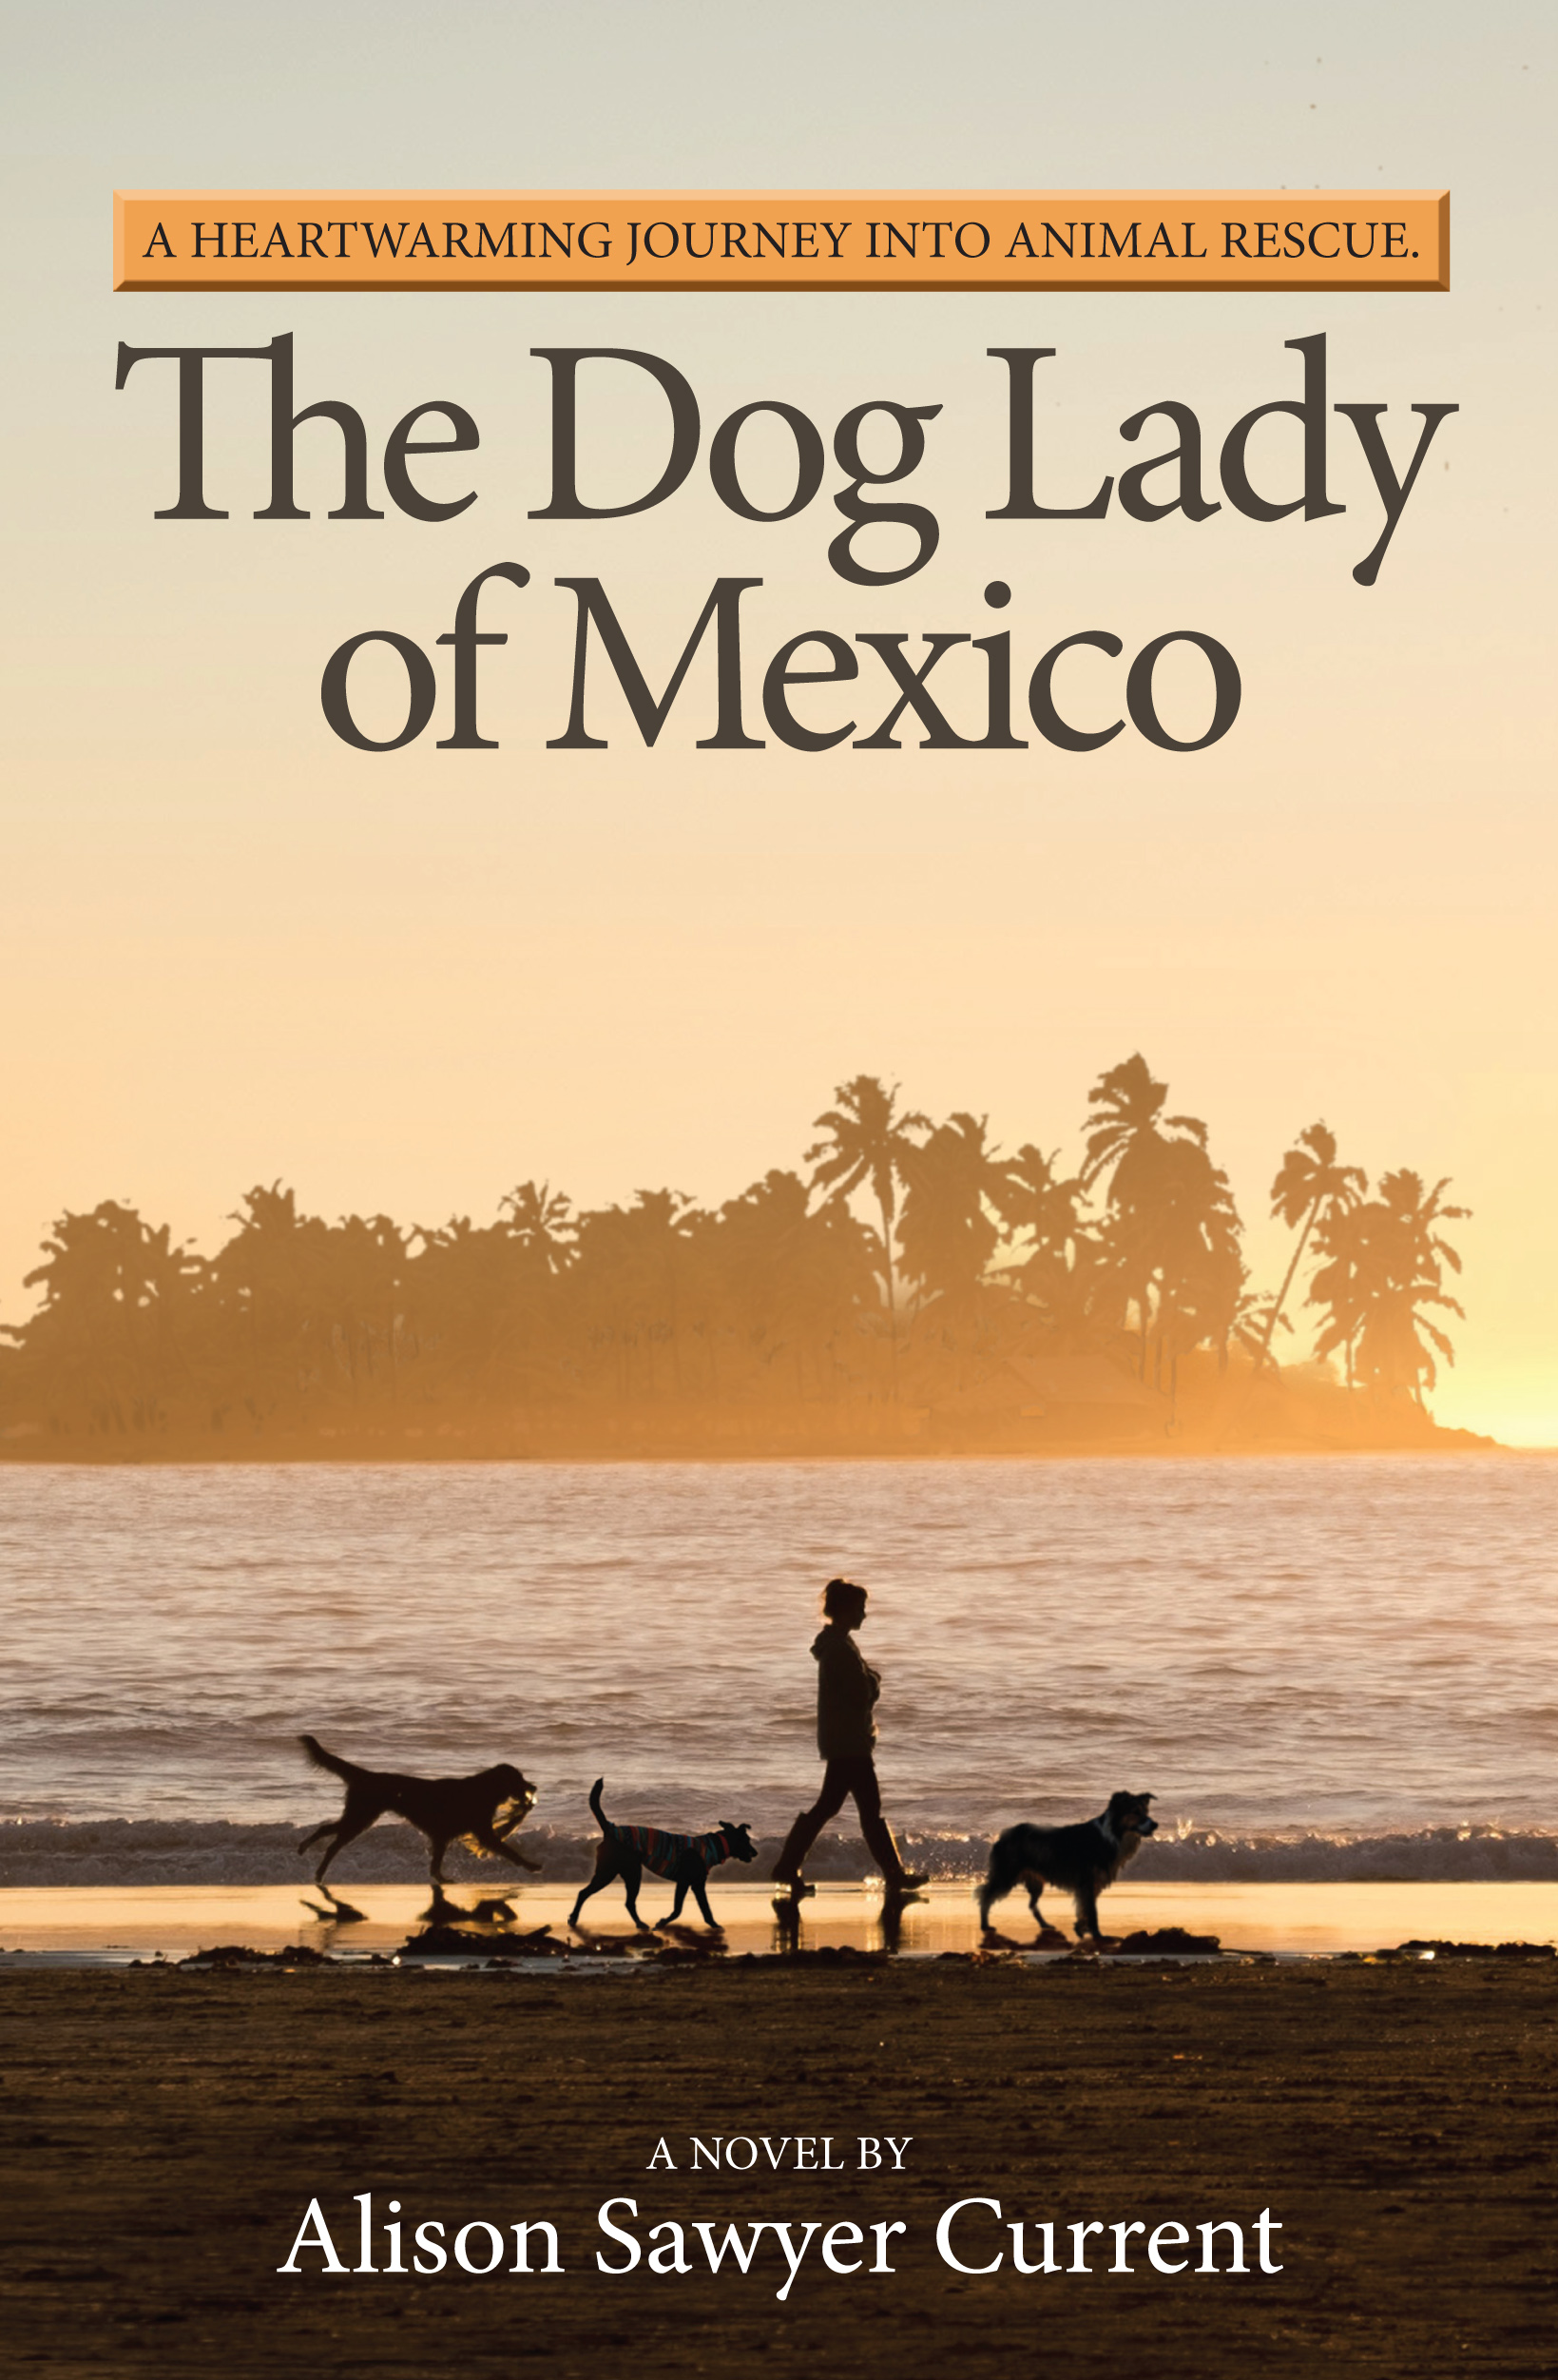 The Dog Lady of Mexico - Alison Sawyer Current